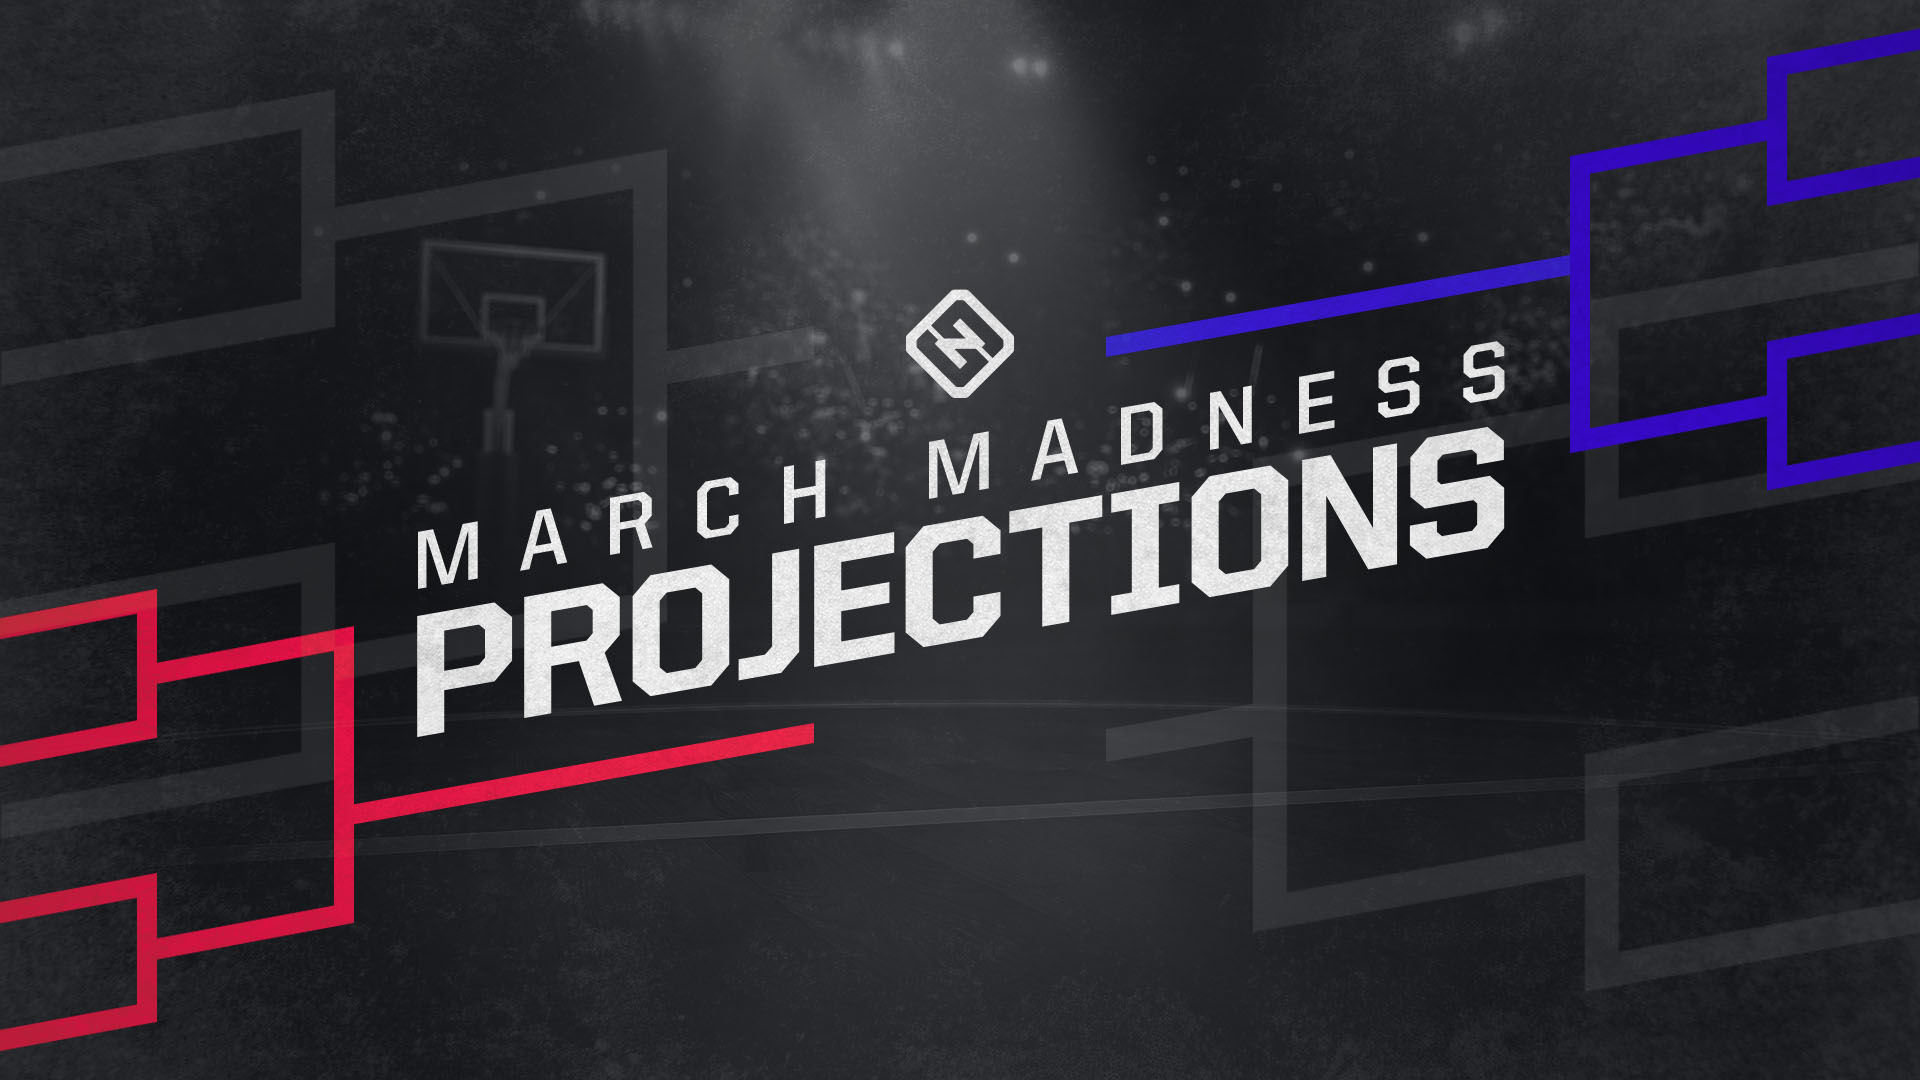 march madness projections 030220 sn ftr i27wcgzmyebg1mofelsnmz22v